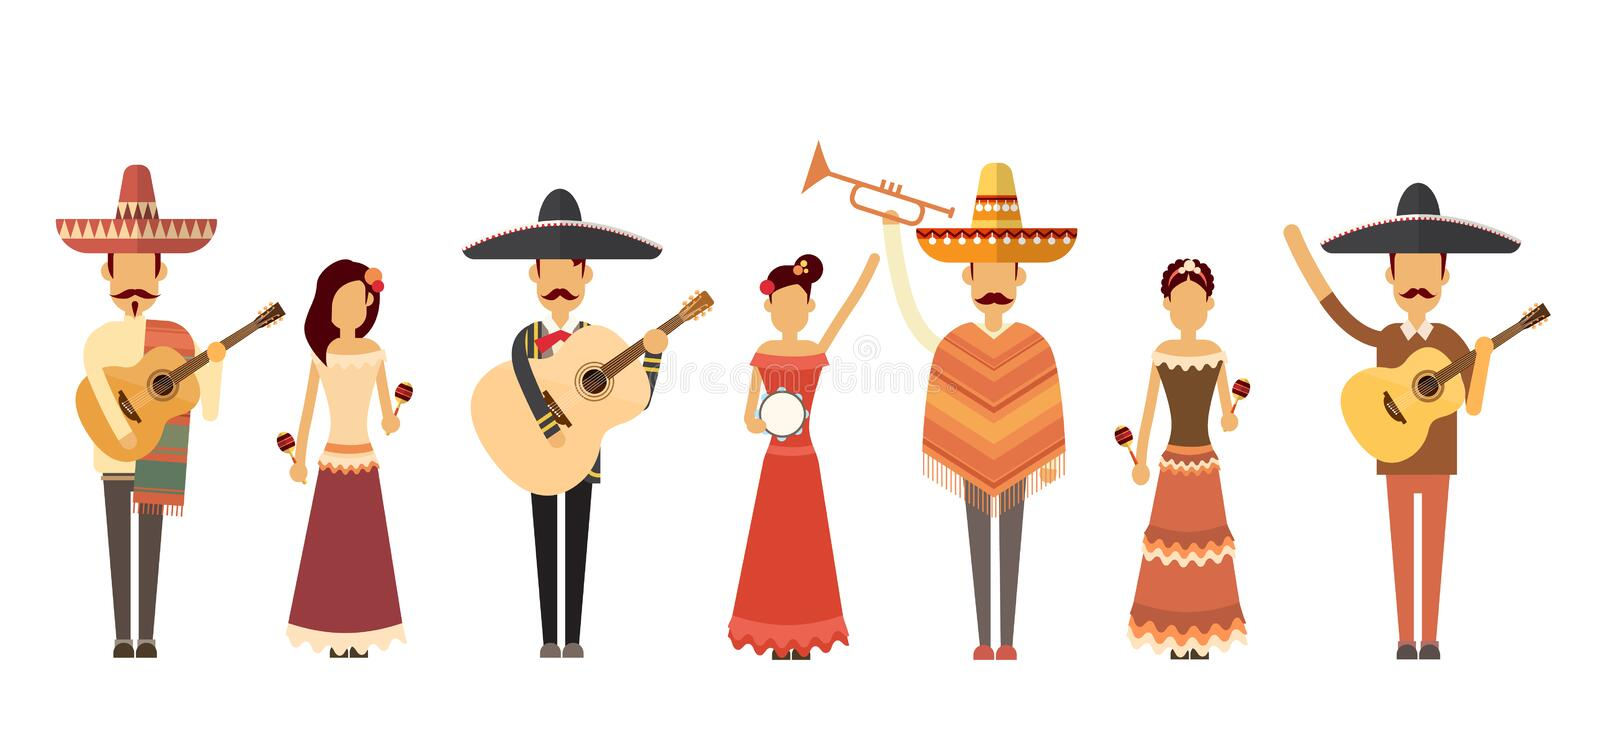 Mexican People Group Wear Traditional Clothes Play Music Instruments Full Length. Flat Vector Illustration vector illustration